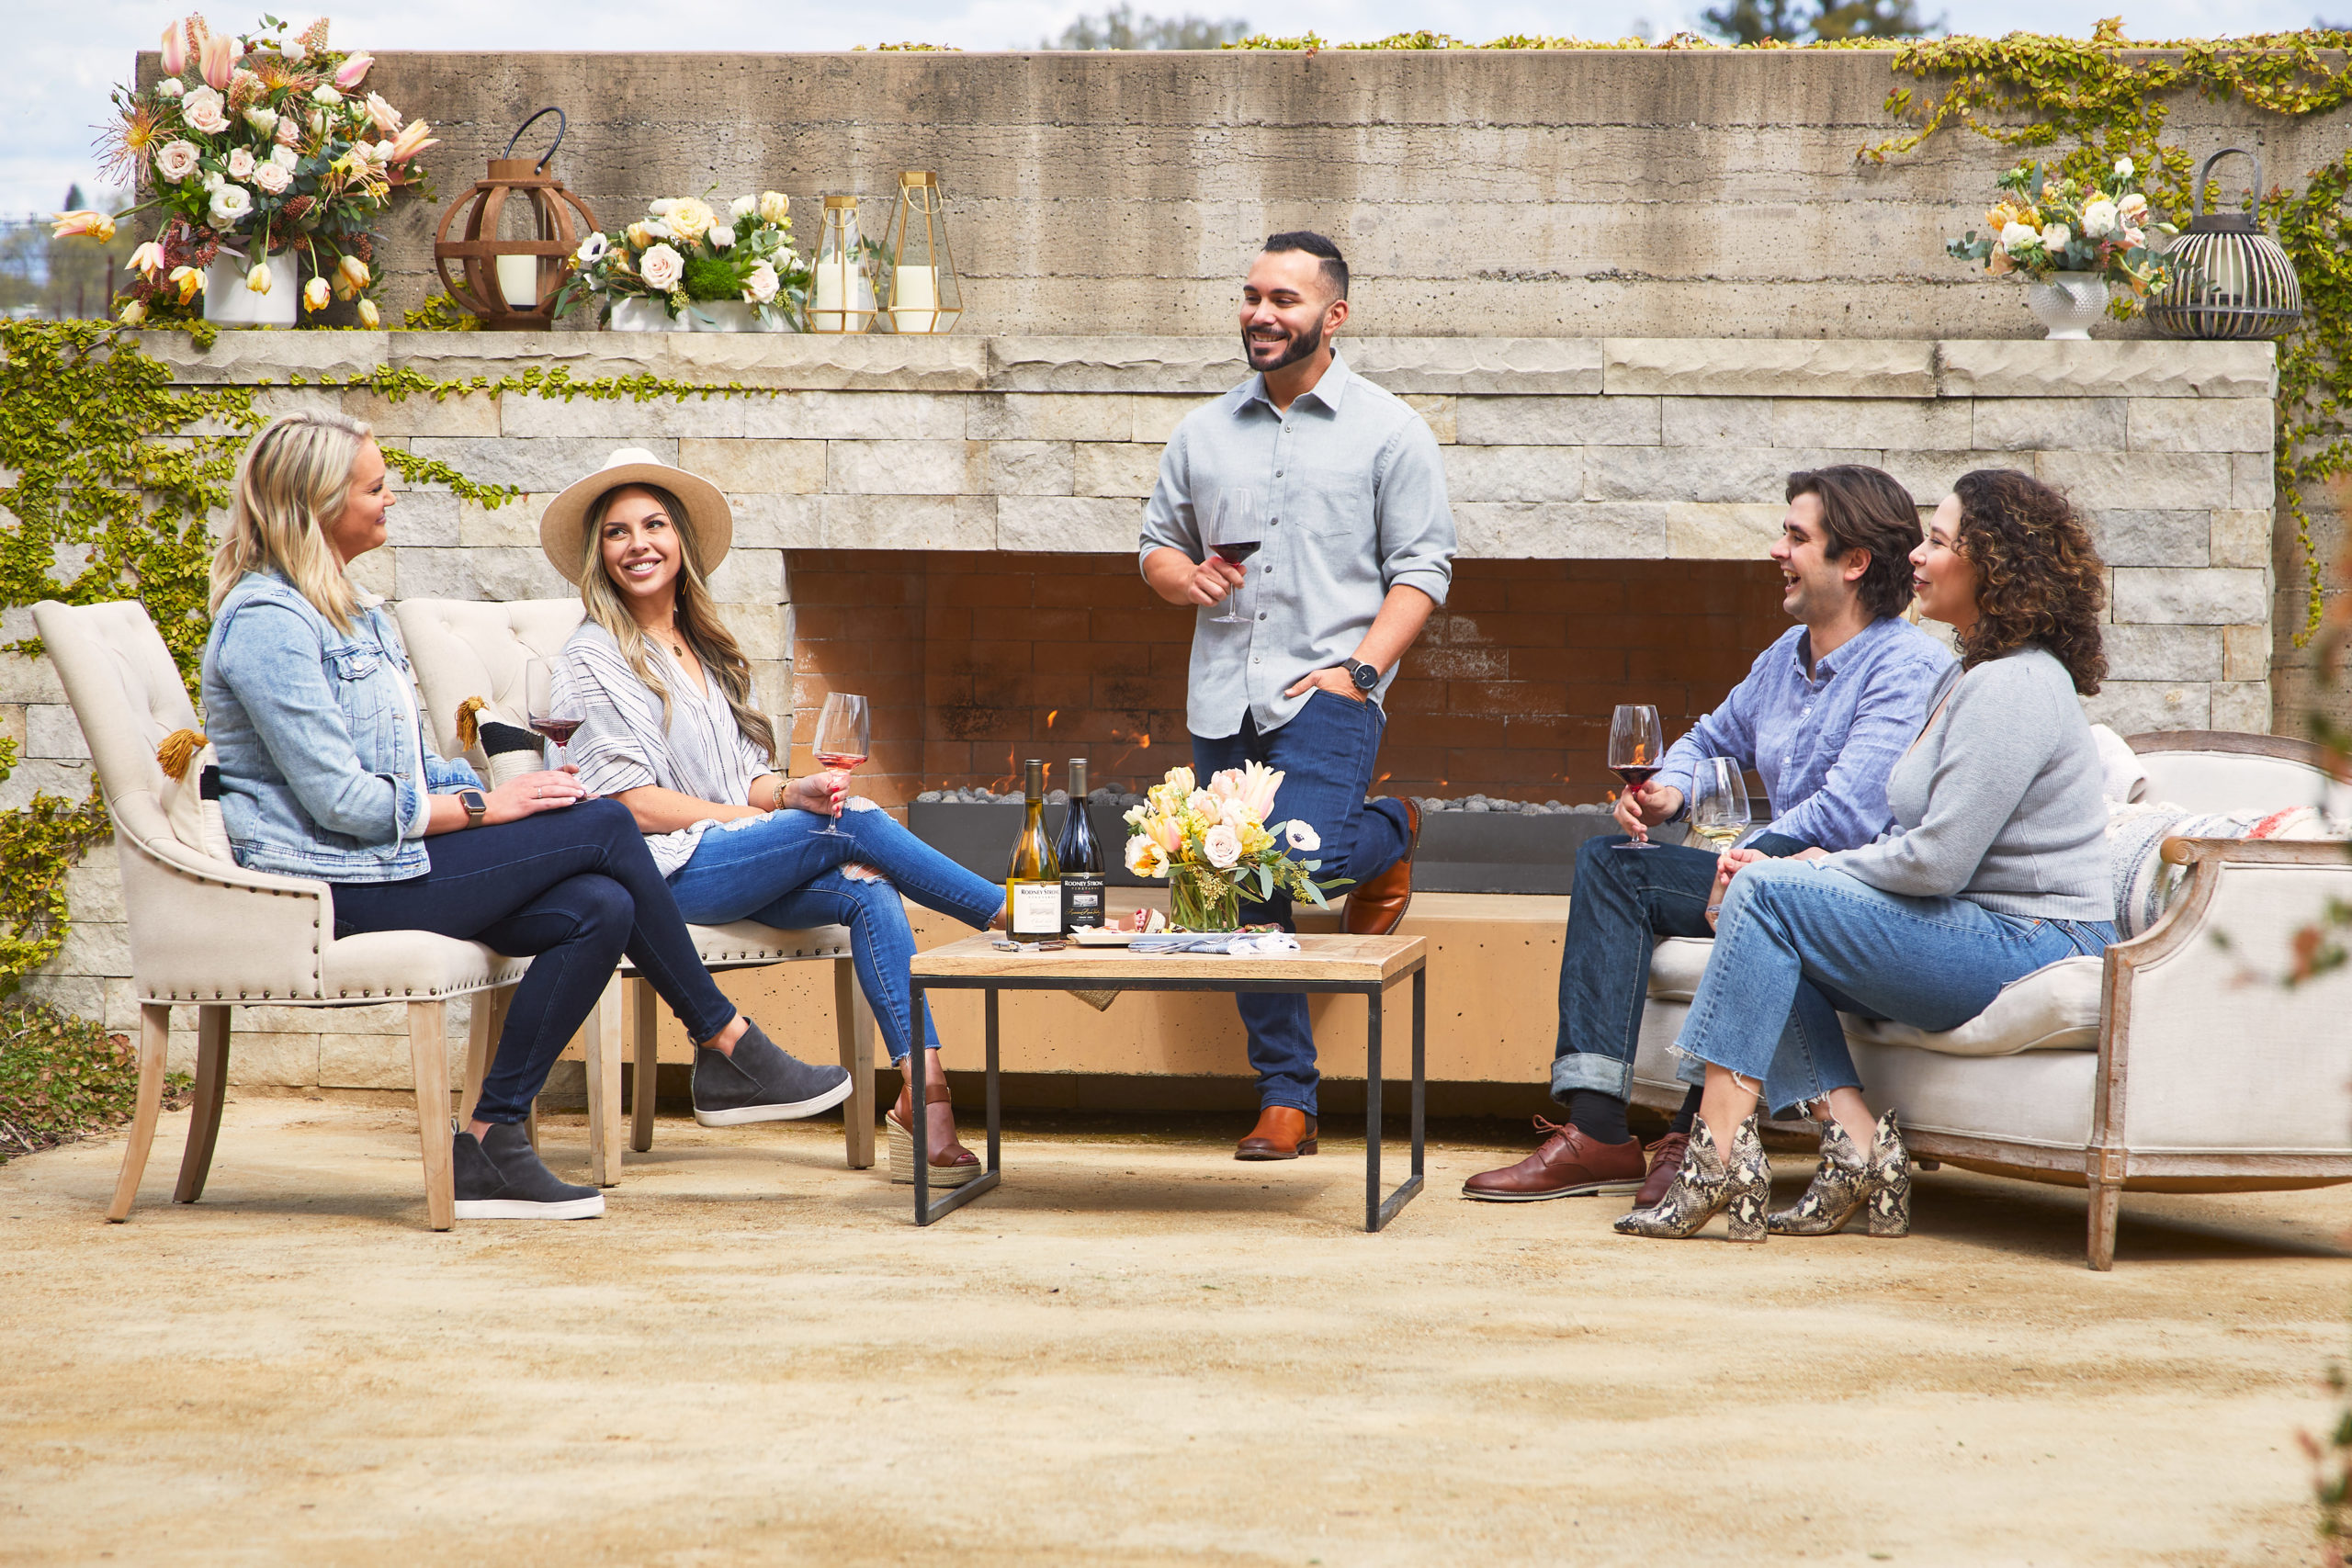 A group of friends enjoying wine in front of an outdoor fireplace in the afternoon